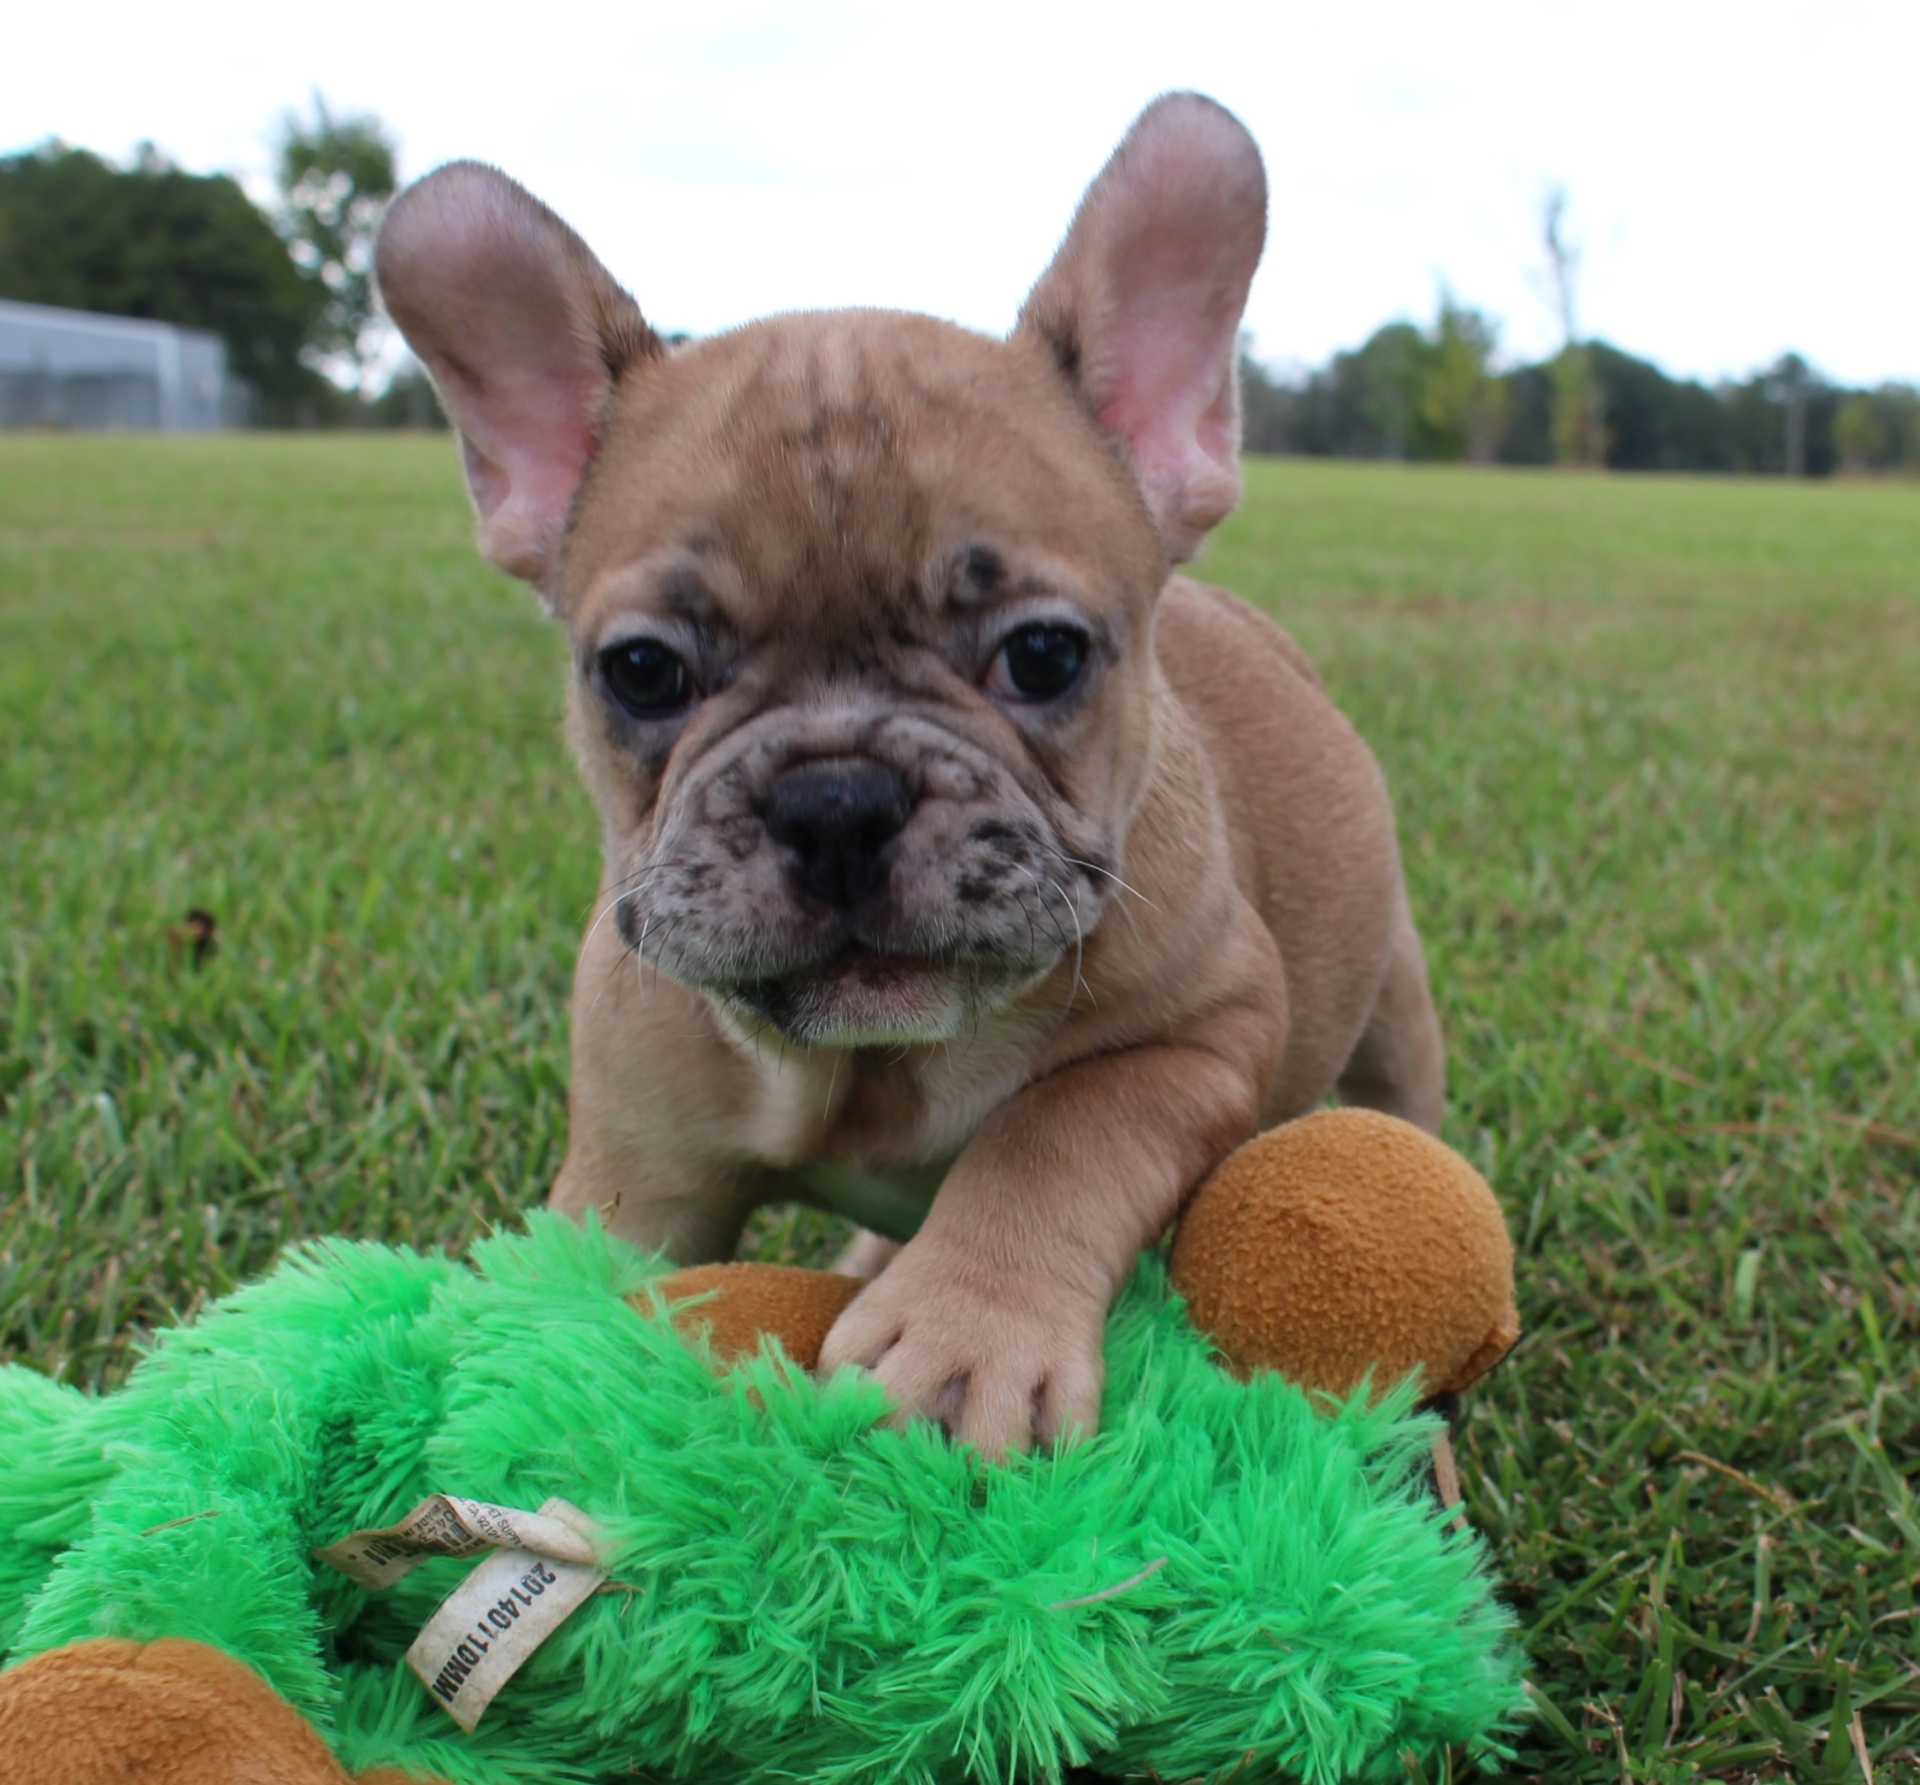 #FrenchBulldogPuppies #MerleFrenchBulldogPuppies #Frenchies